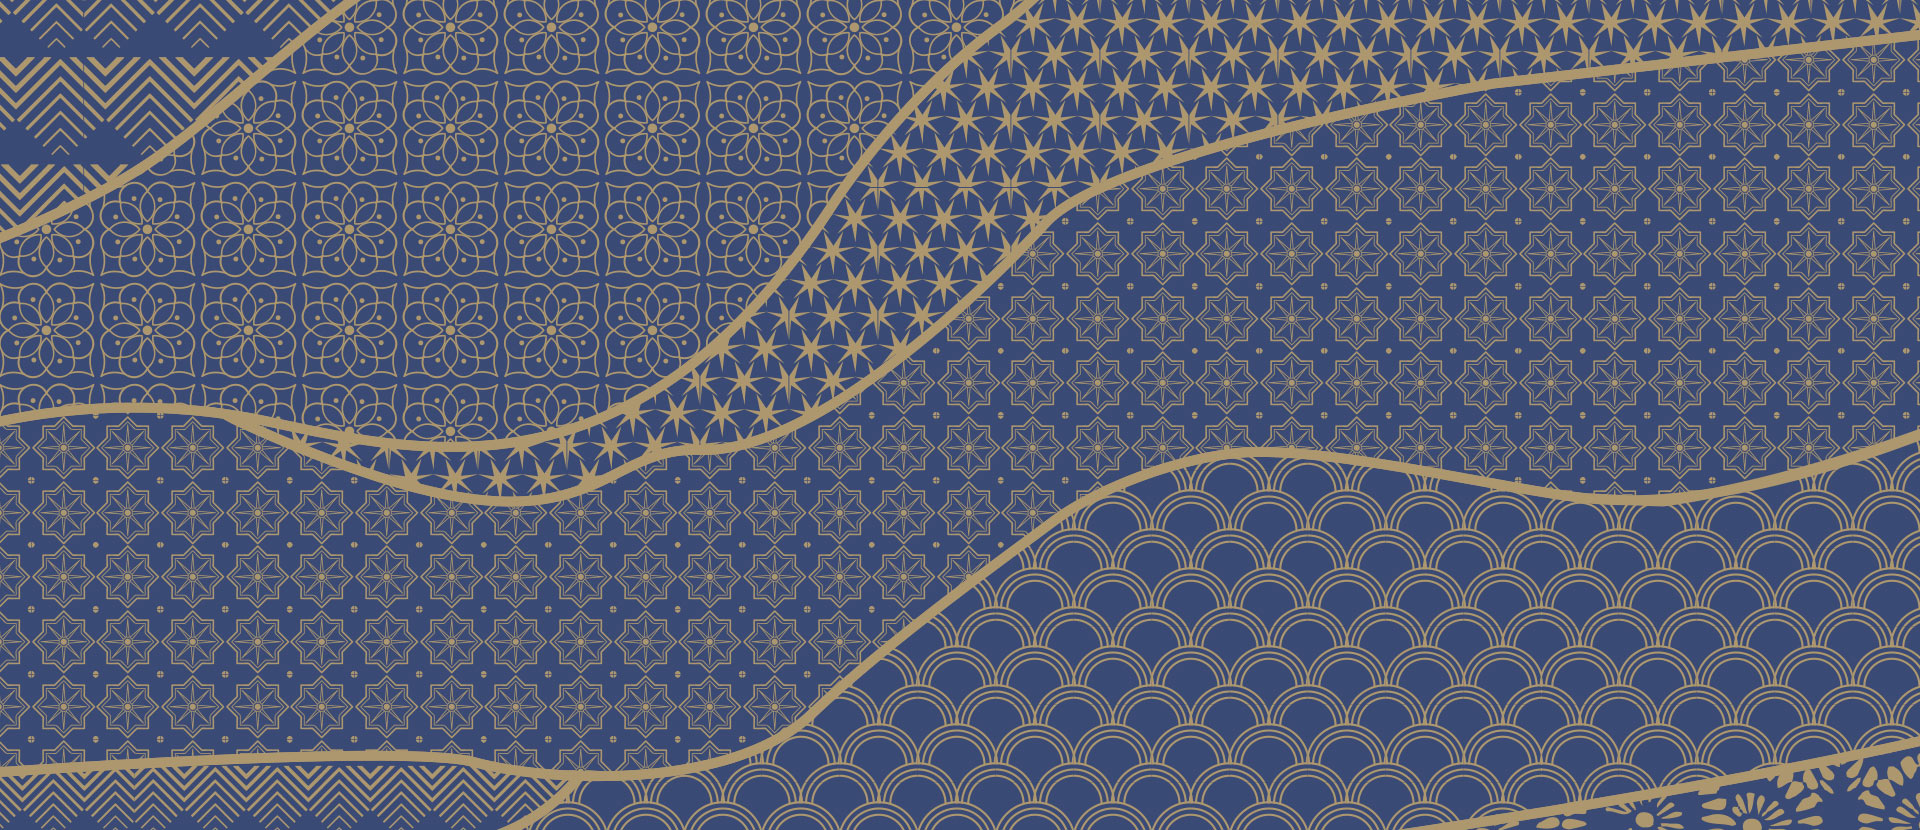 Indigo Tales: 2018 Promemoria collection led by indigo color and presented during the Milan Design Week | Promemoria